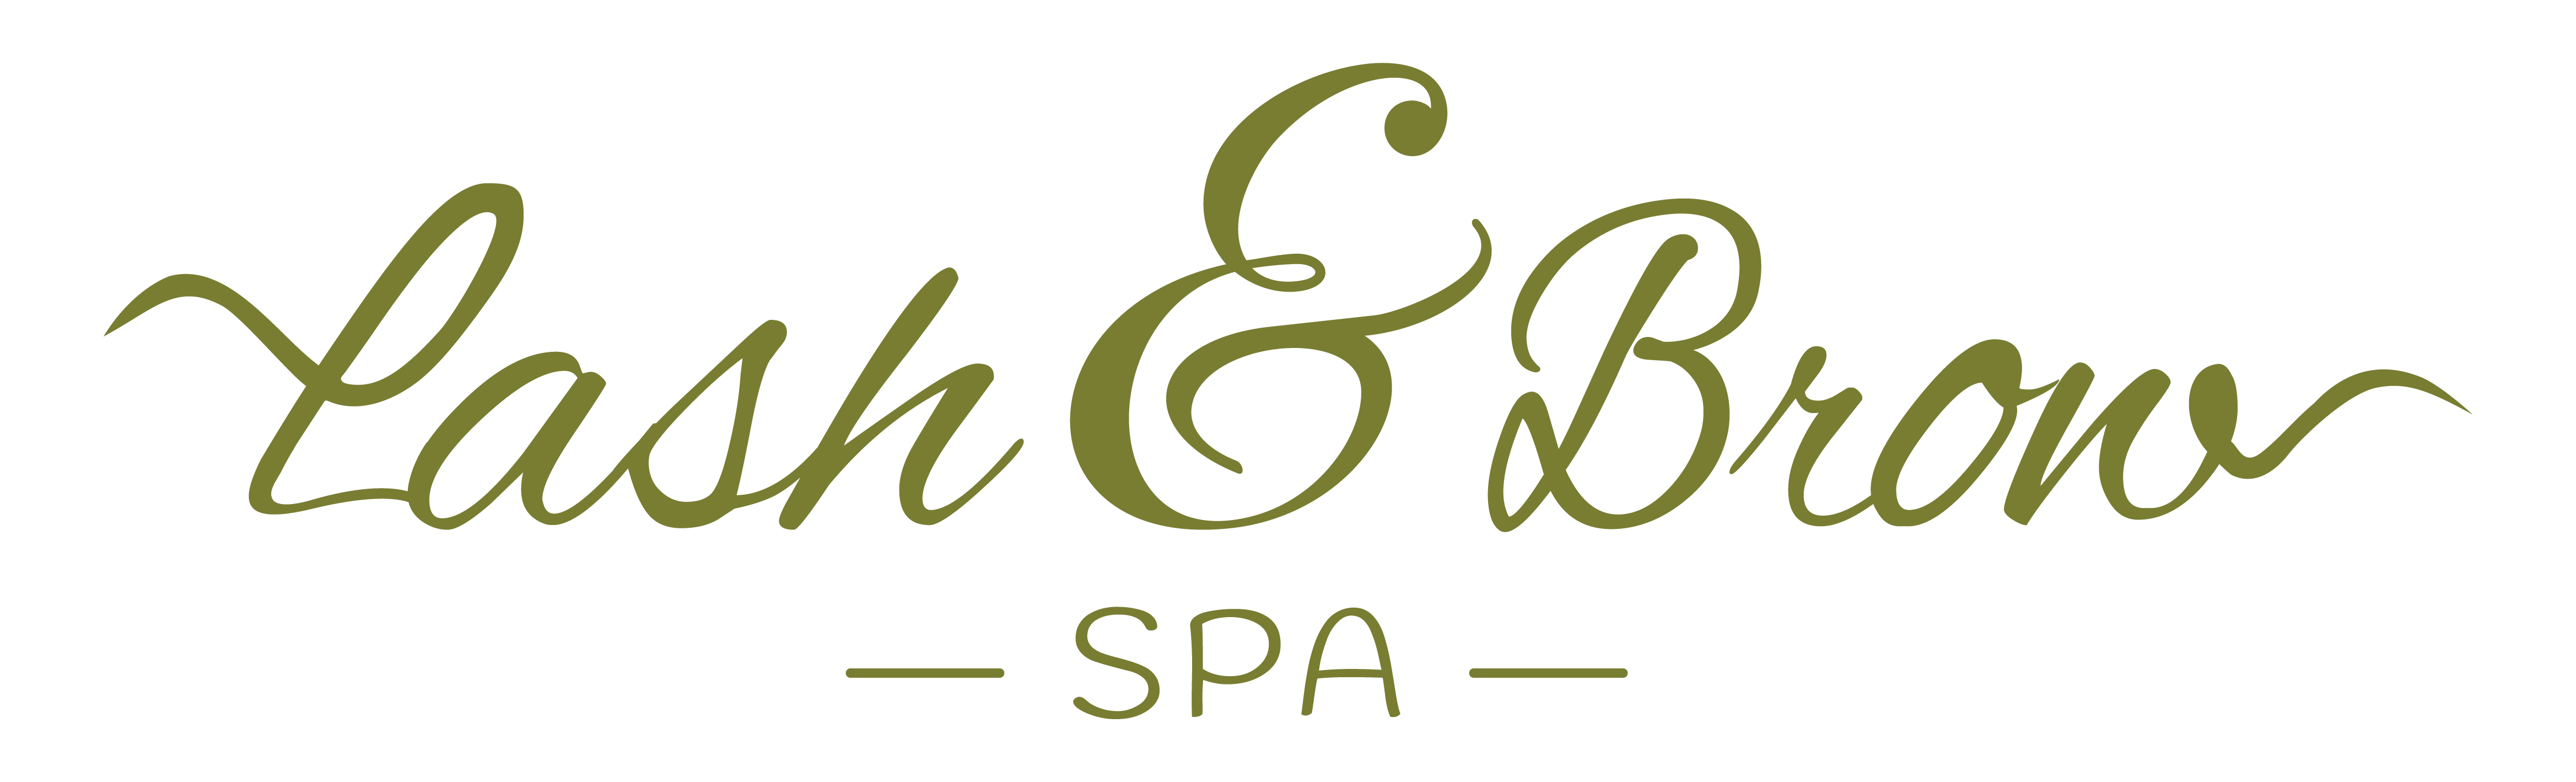 Lash and Brow Spa